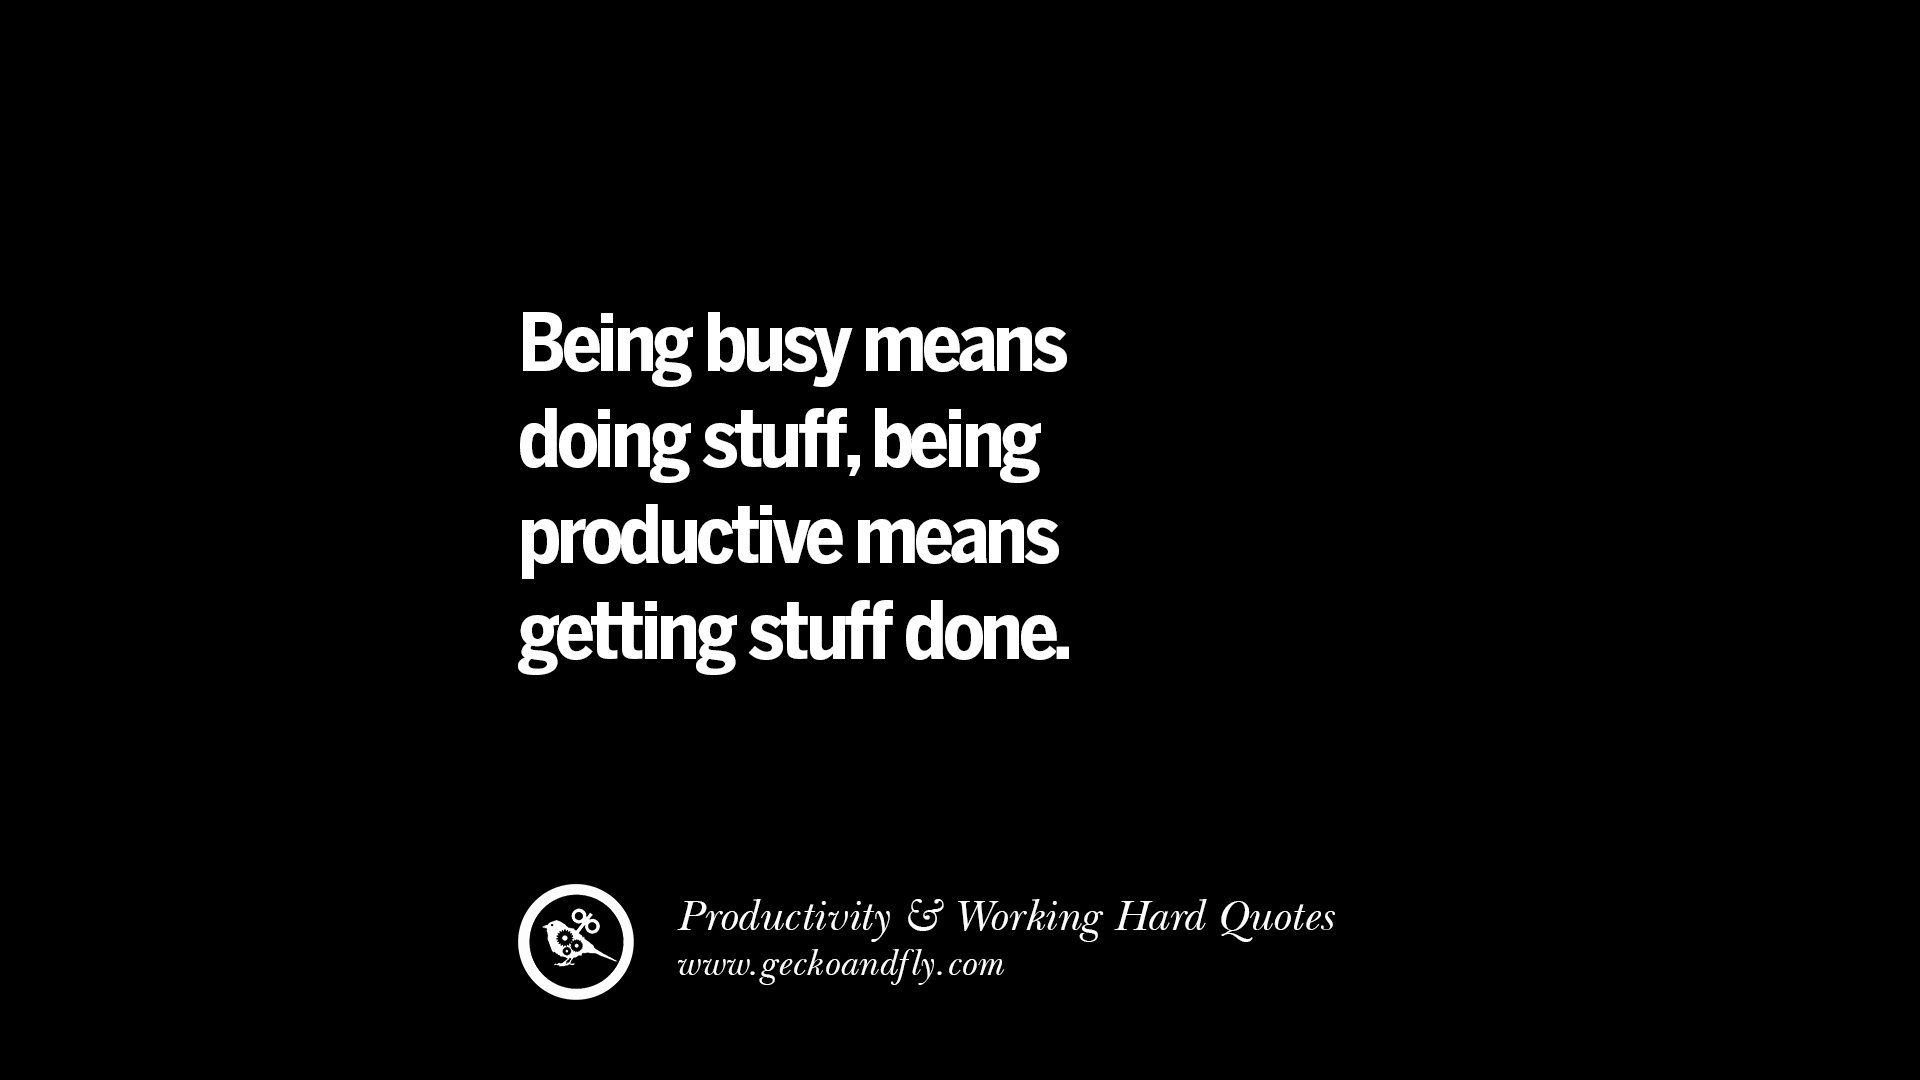 Inspirational Quotes For Work: 30 Uplifting Quotes On Increasing Productivity And Working